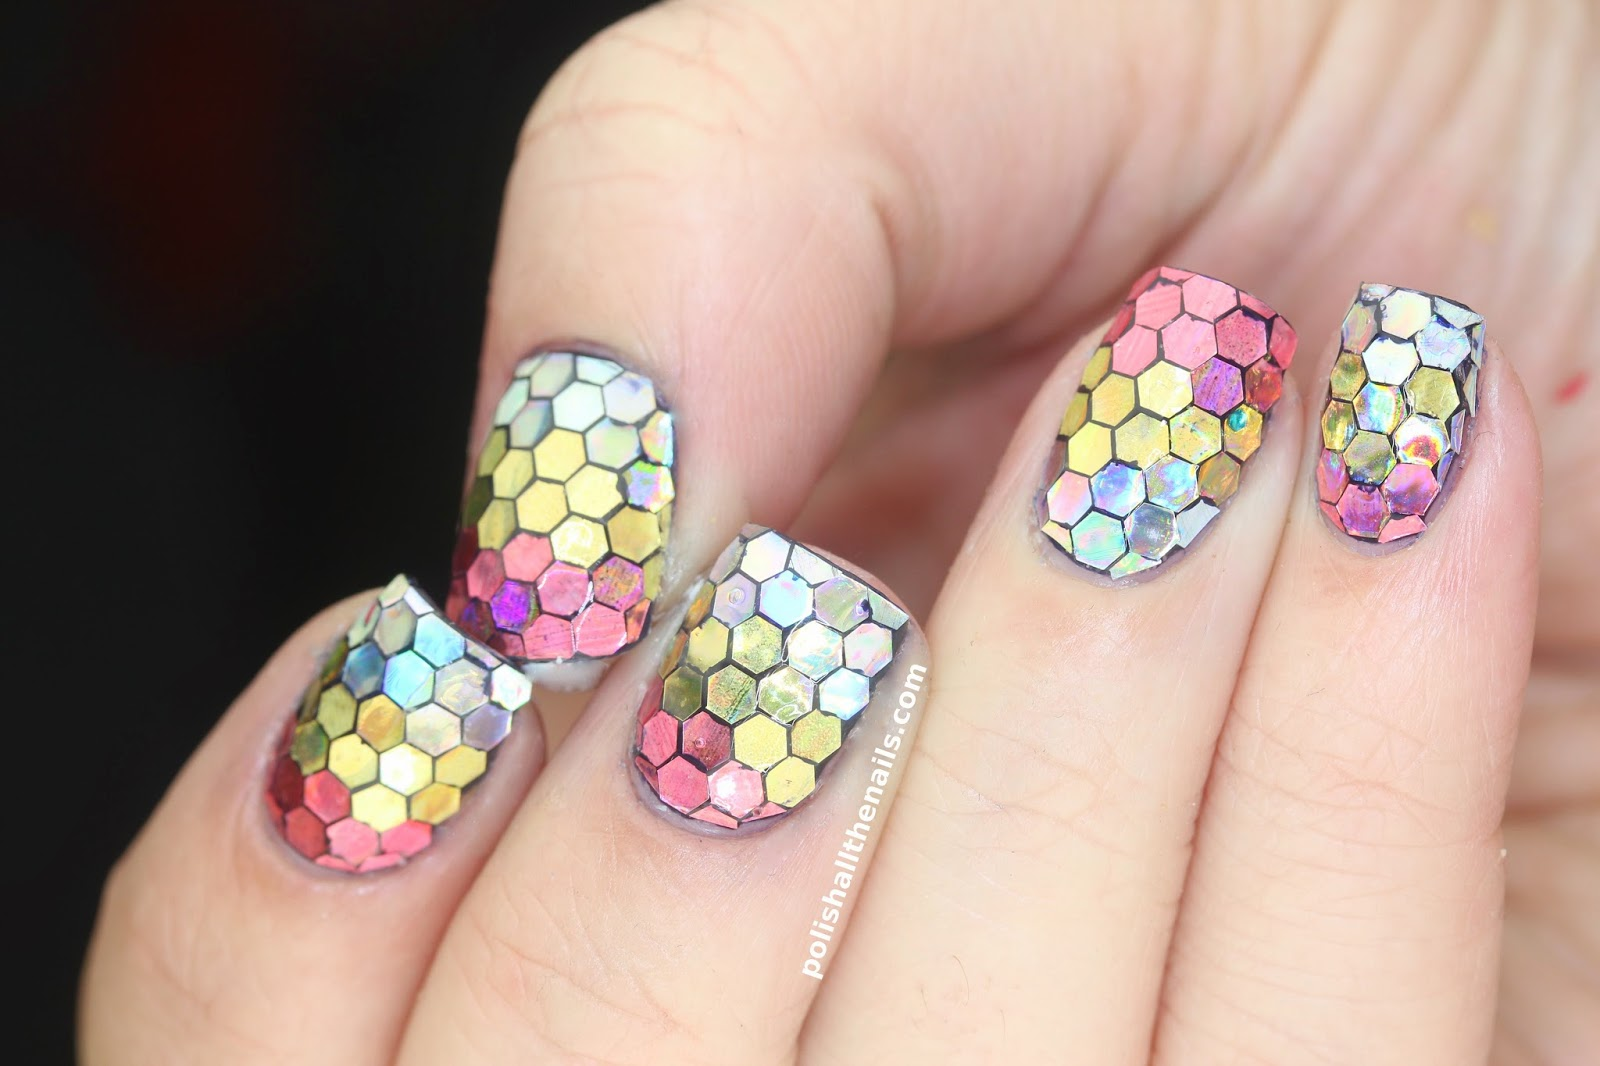 Nail Art: Sunset Mermaid Nails for My Instagram Meetup!